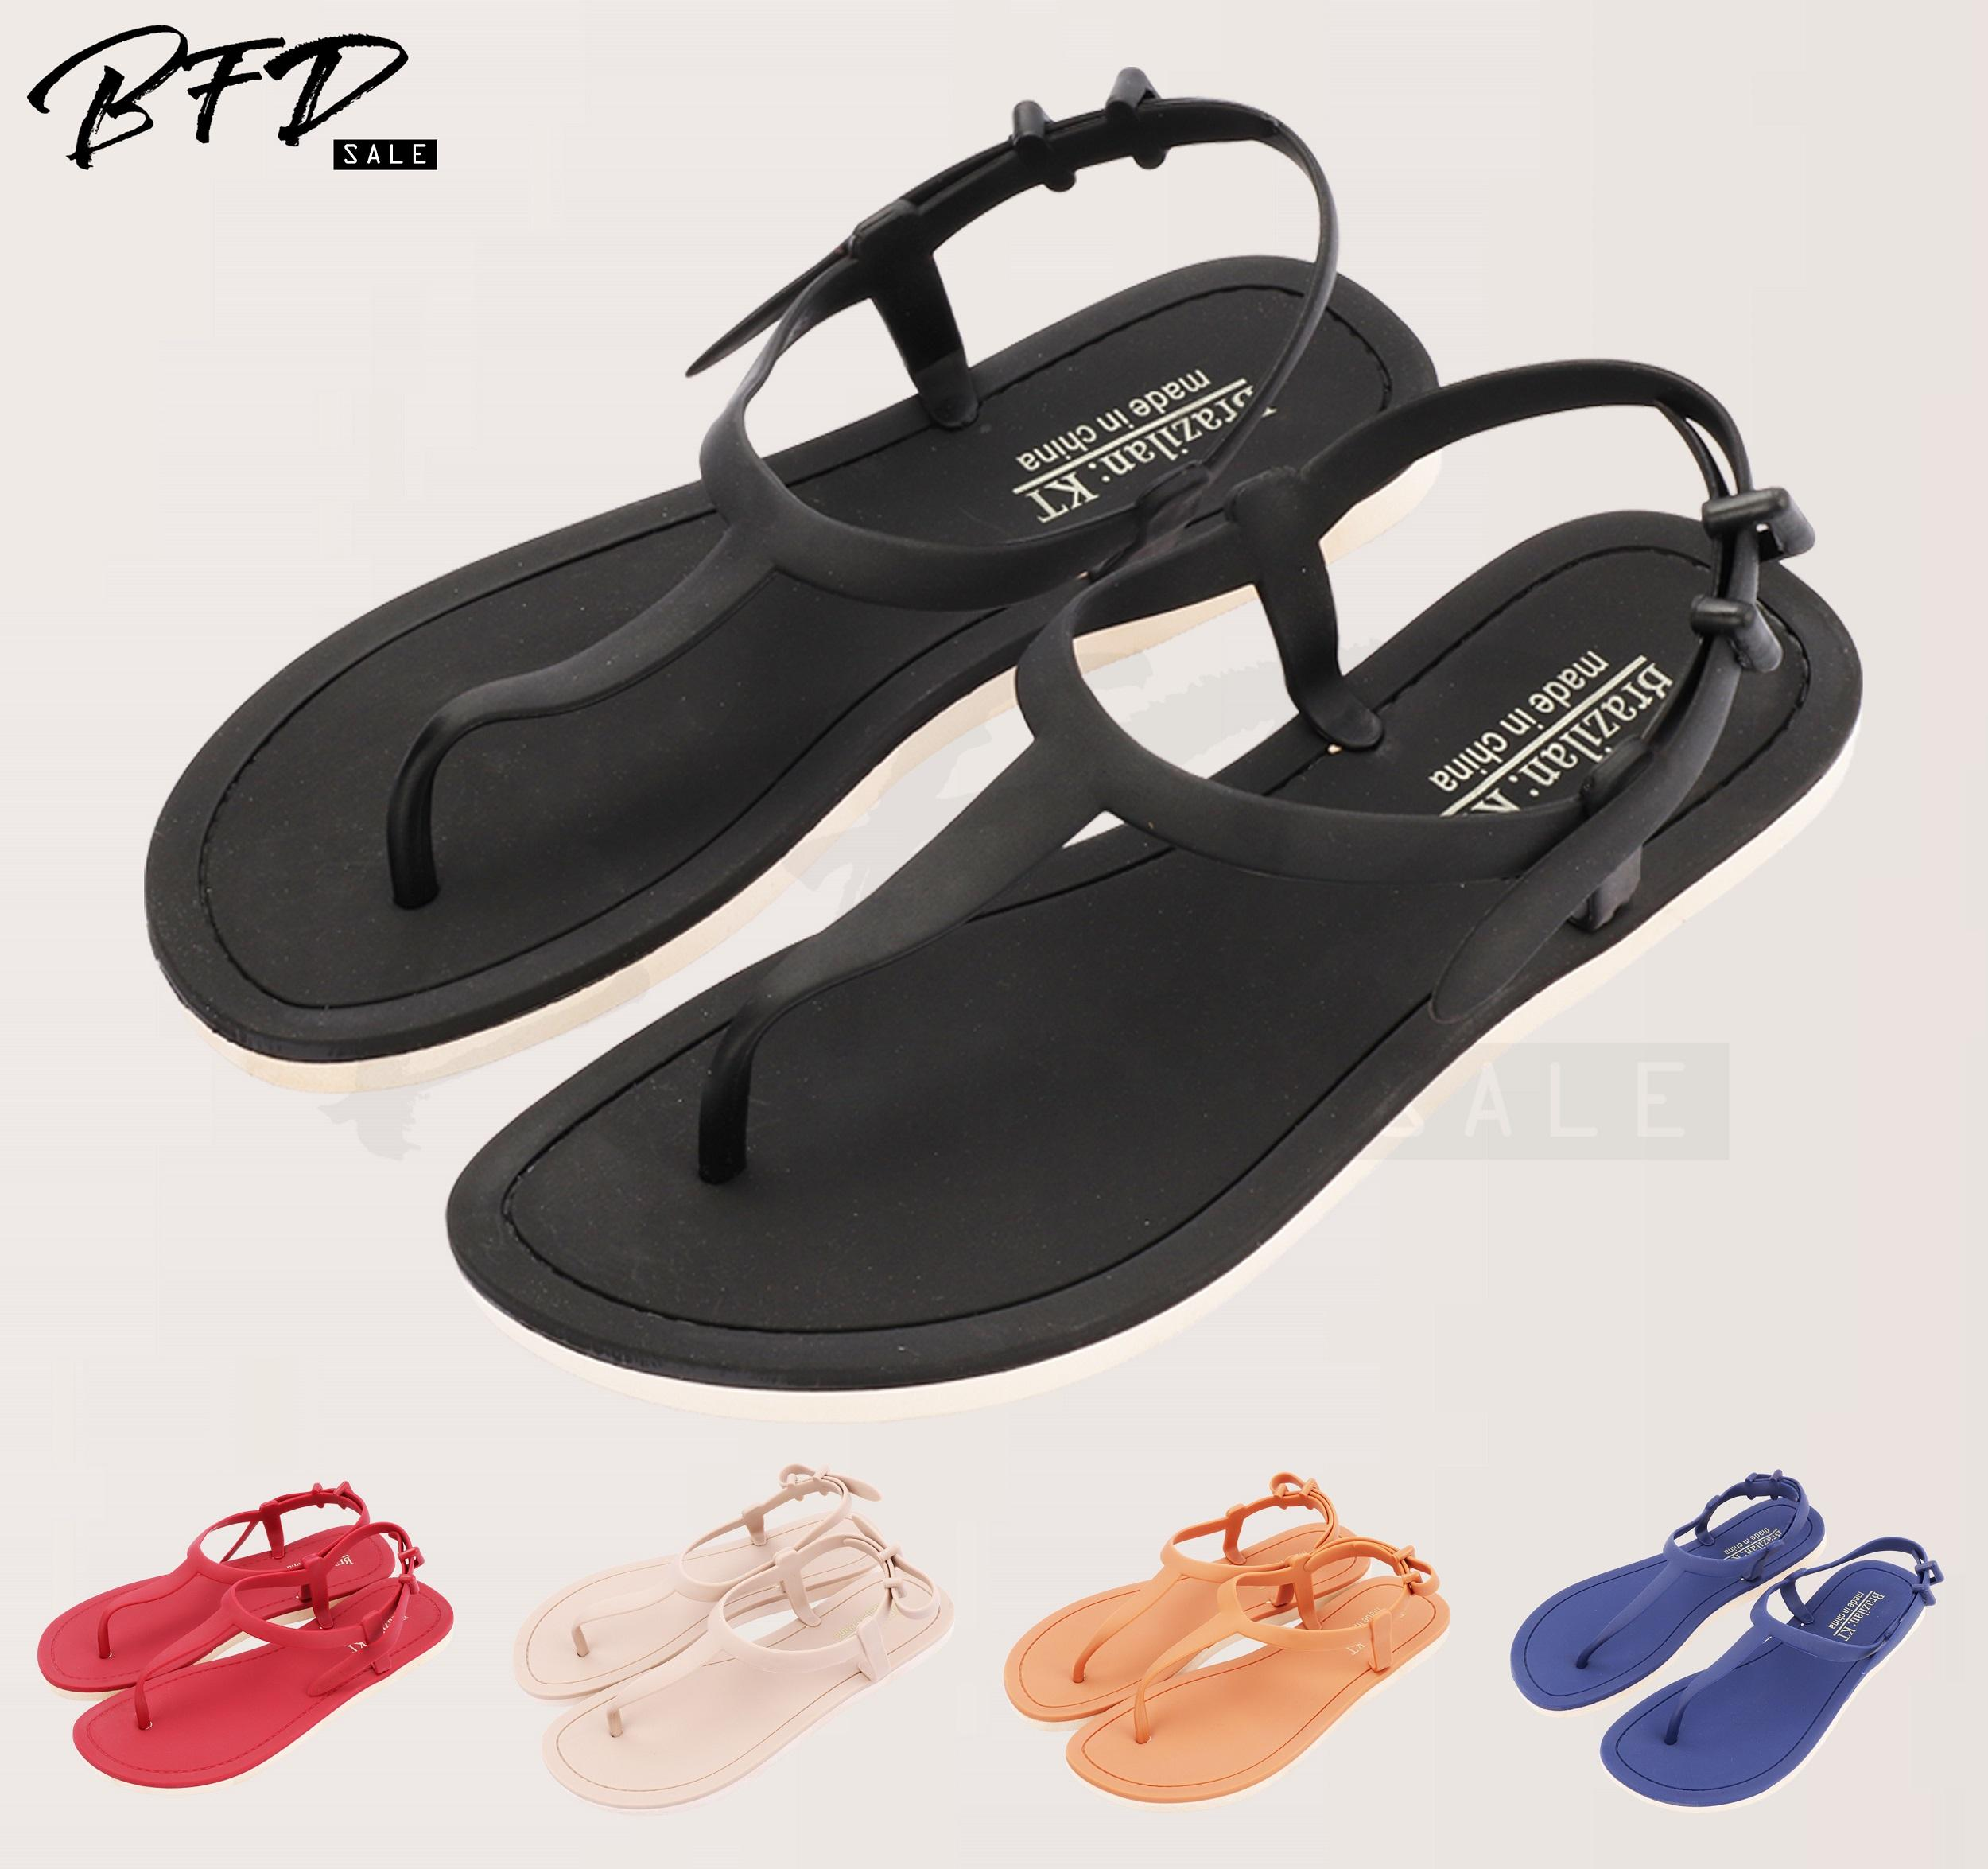 e49ed9db8 Big Sale Korean Style Ladies Flat Sandals Elastic Band Closure T-Strap  Sandals 8839